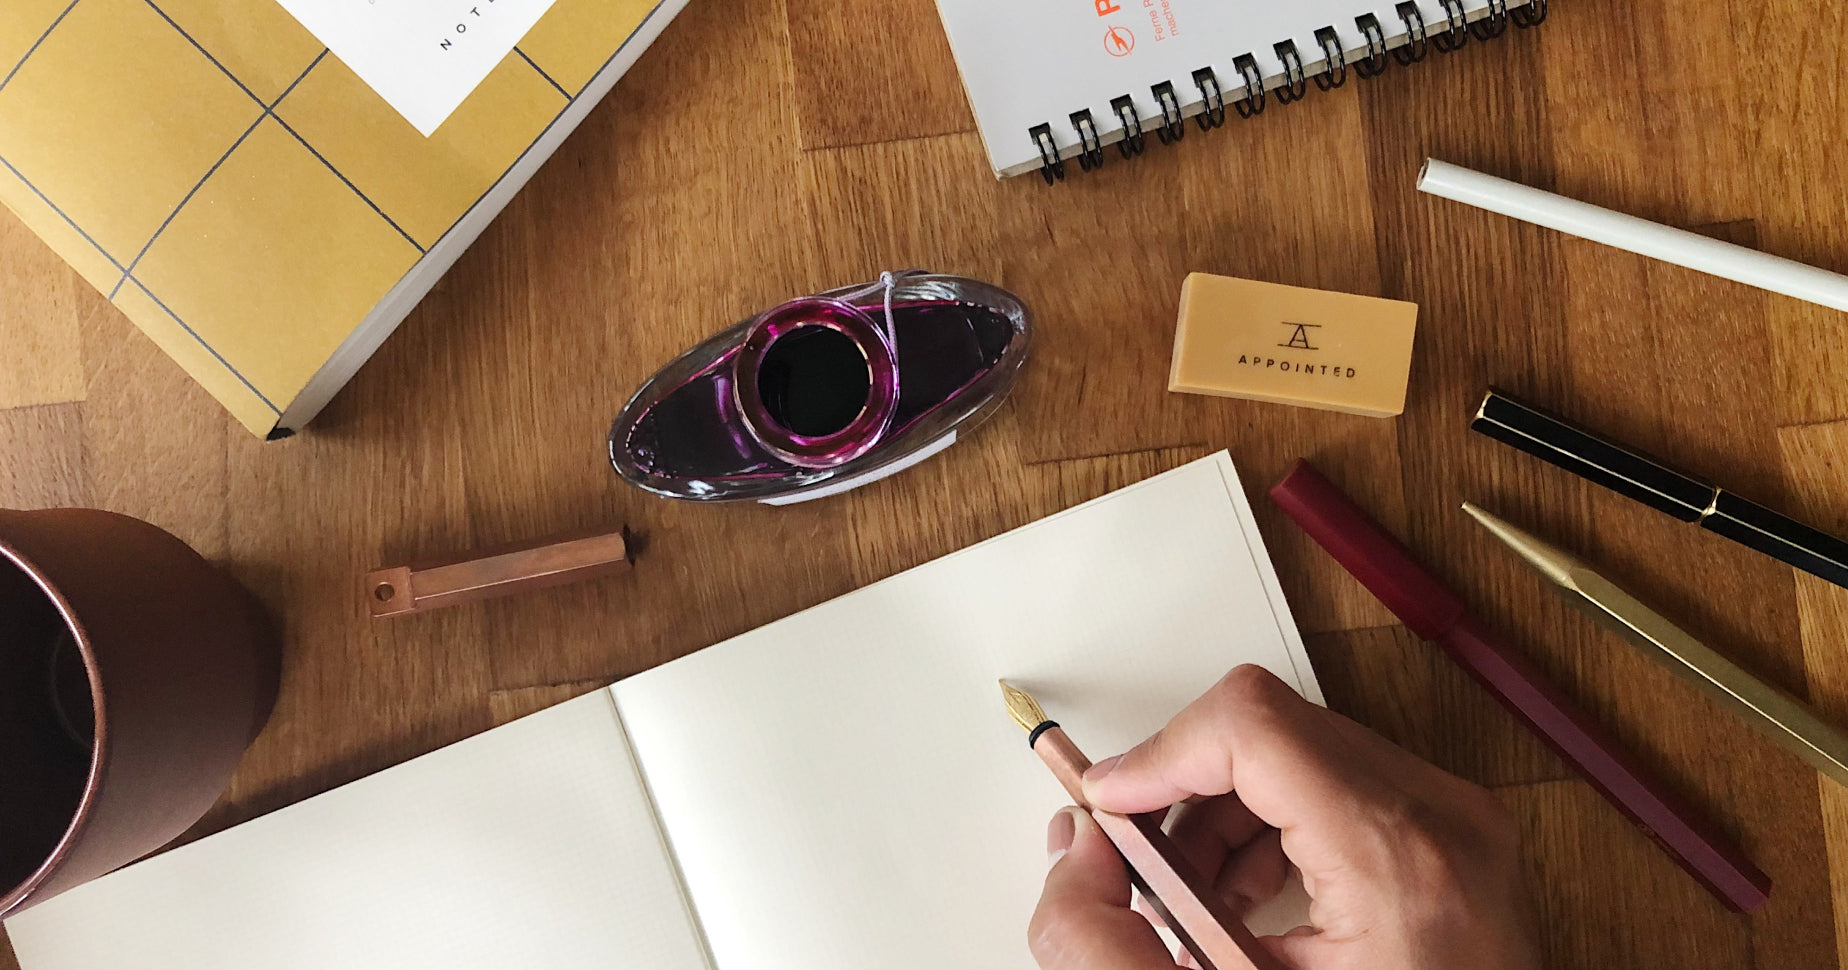 A hand gripping a fountain pen hovers above a blank notebook on a table. An inkwell, other pens, and some notebooks also rest on the table.